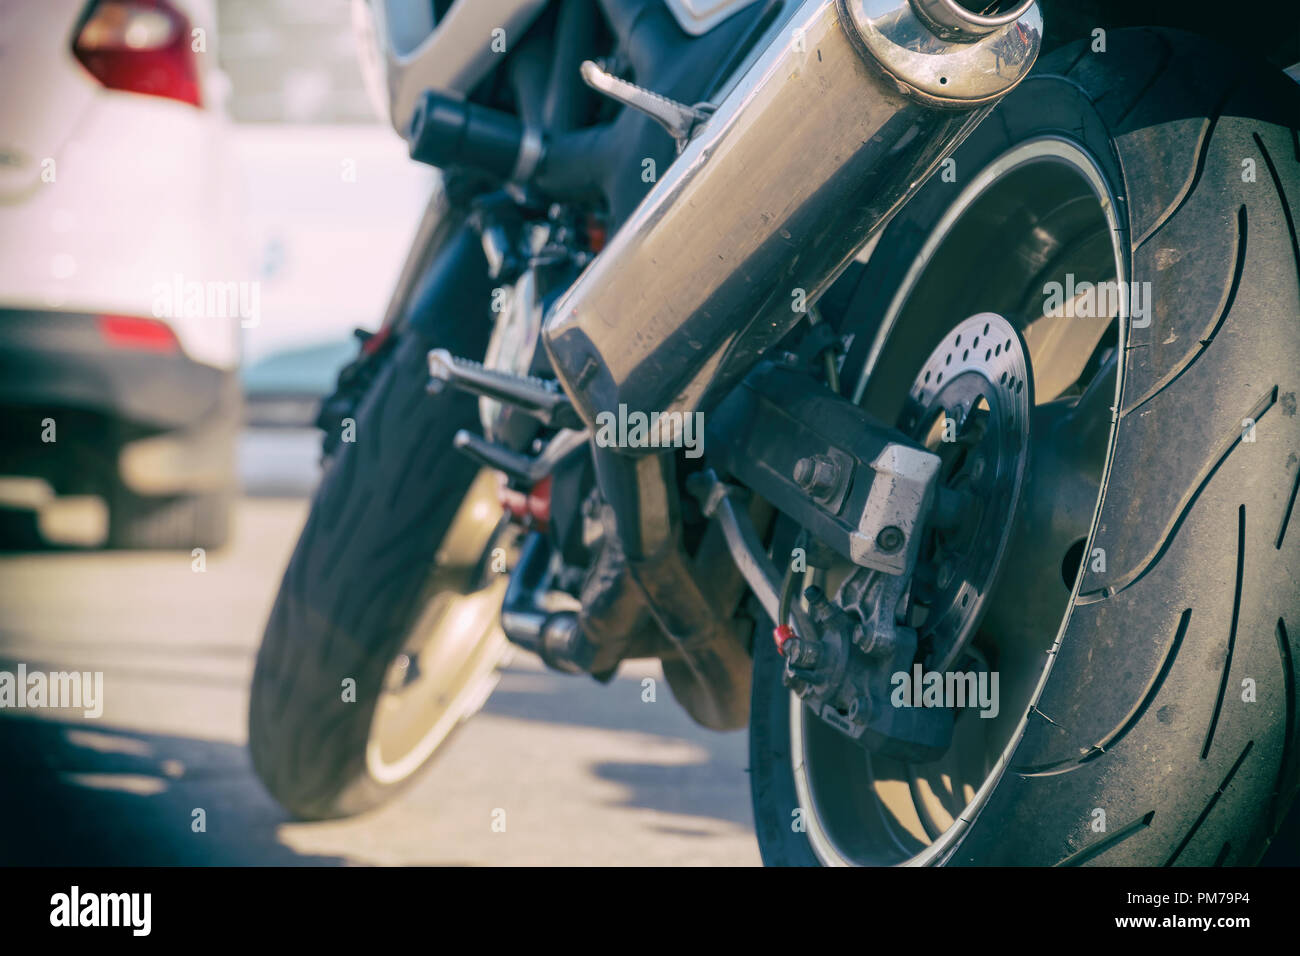 Rear view of the motorcycle. Rear wheel, exhaust pipe. - Stock Image